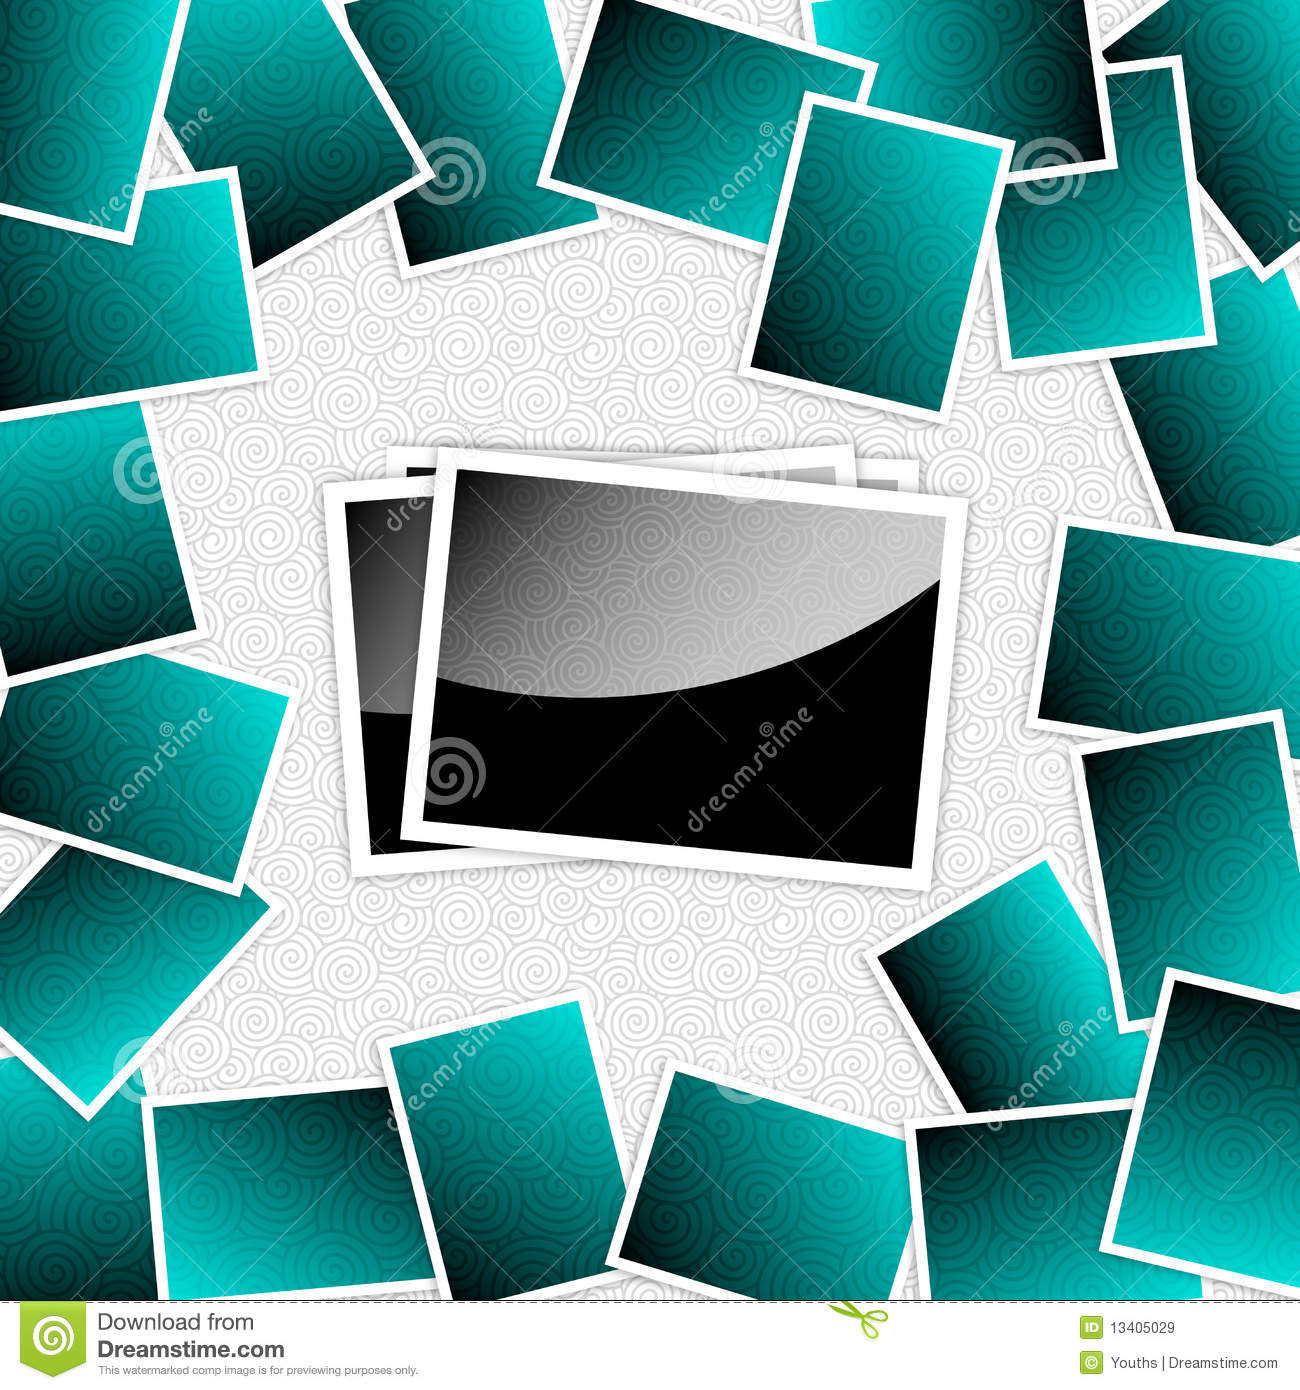 free collage templates - vector photos template frames stock vector illustration